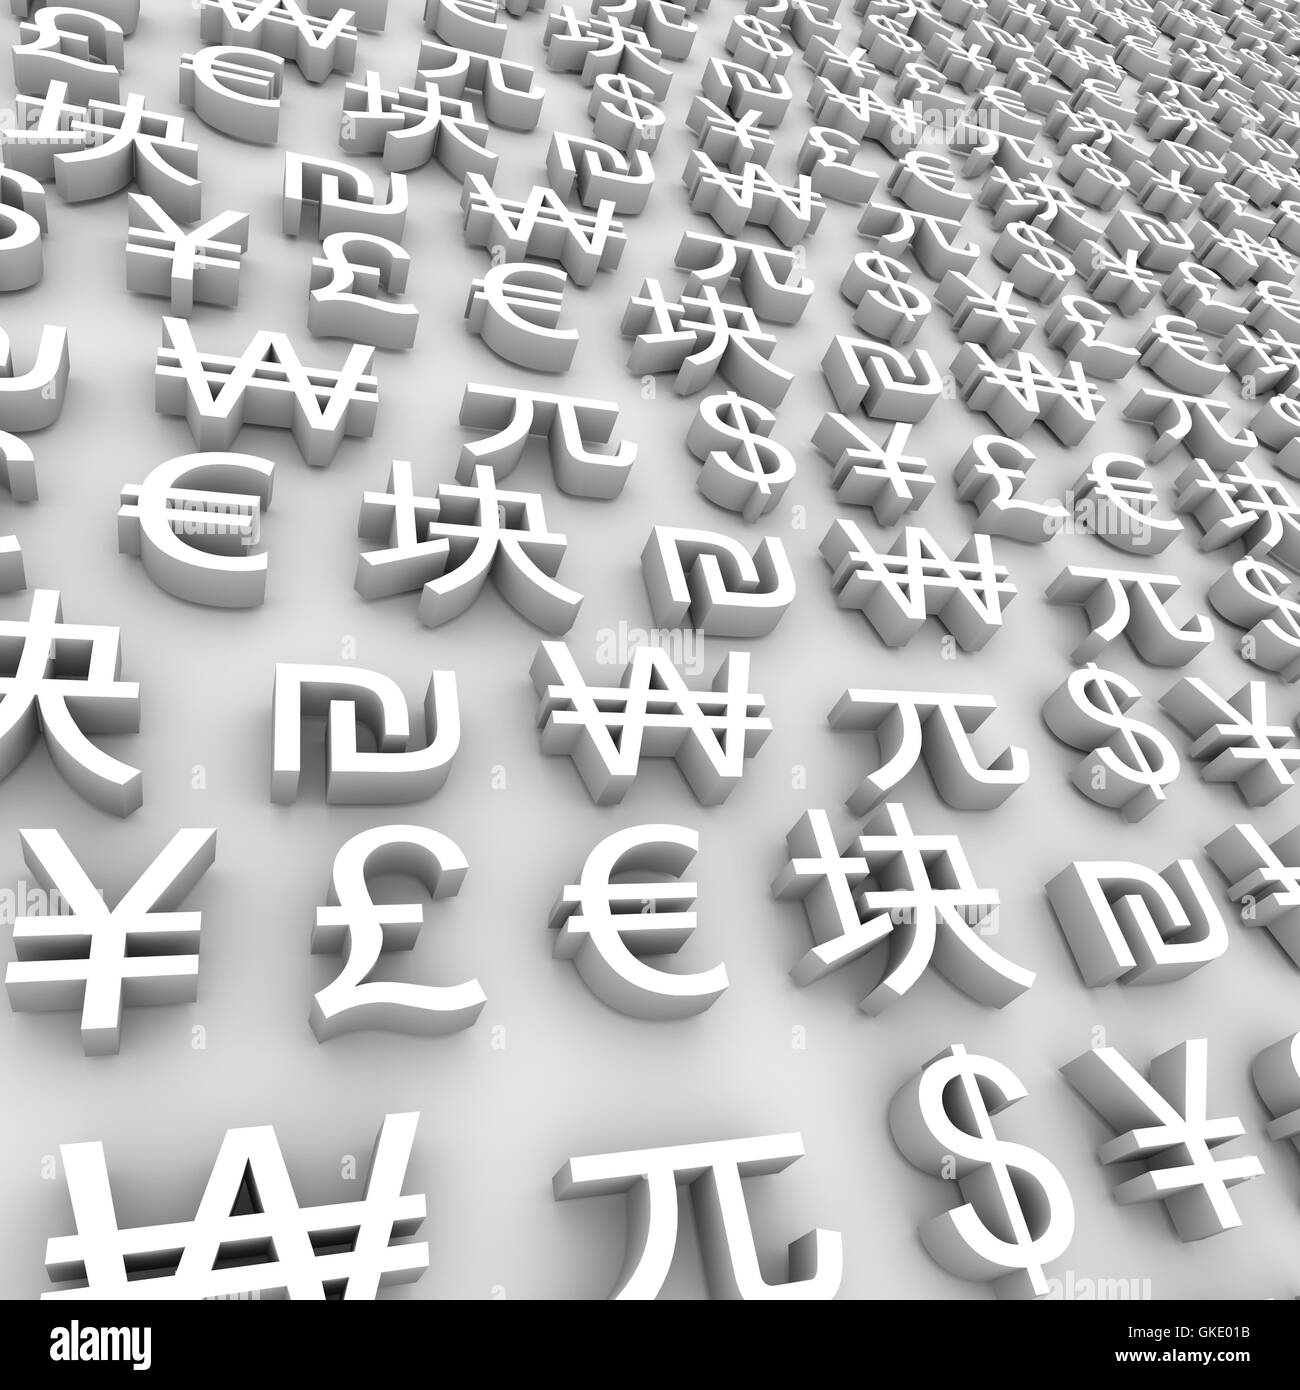 Euro Symbol Global Currencies Stock Photos Euro Symbol Global